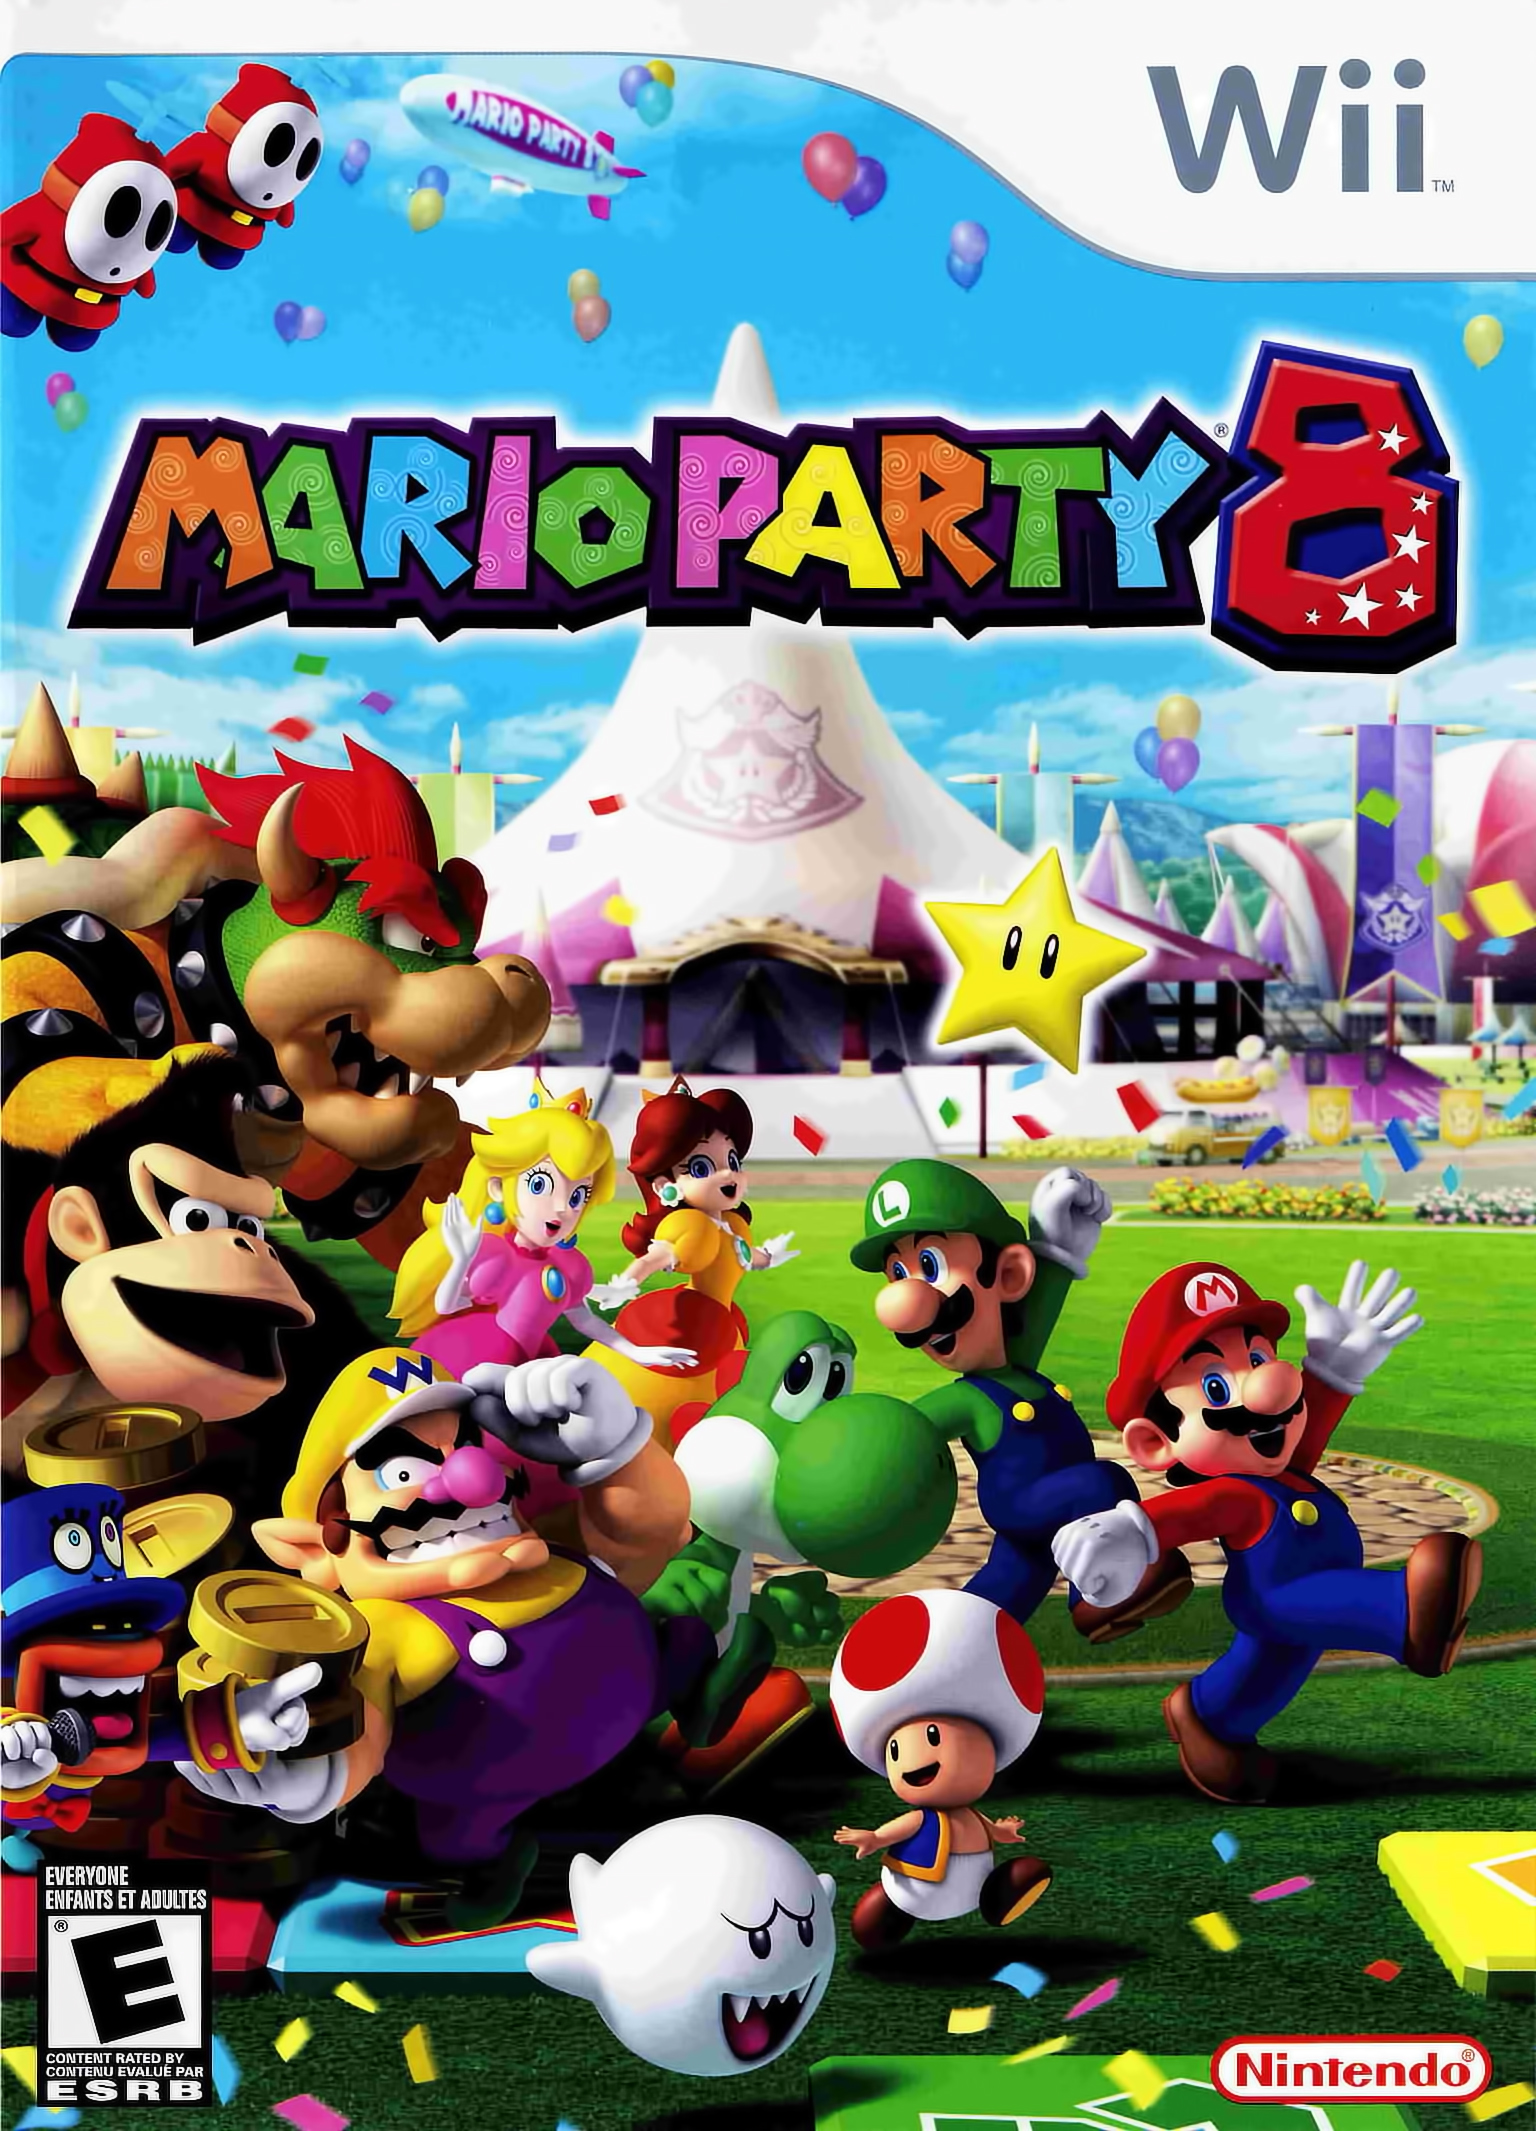 Mario Party 8 | Game Grumps Wiki | FANDOM powered by Wikia Egoraptor Jontron